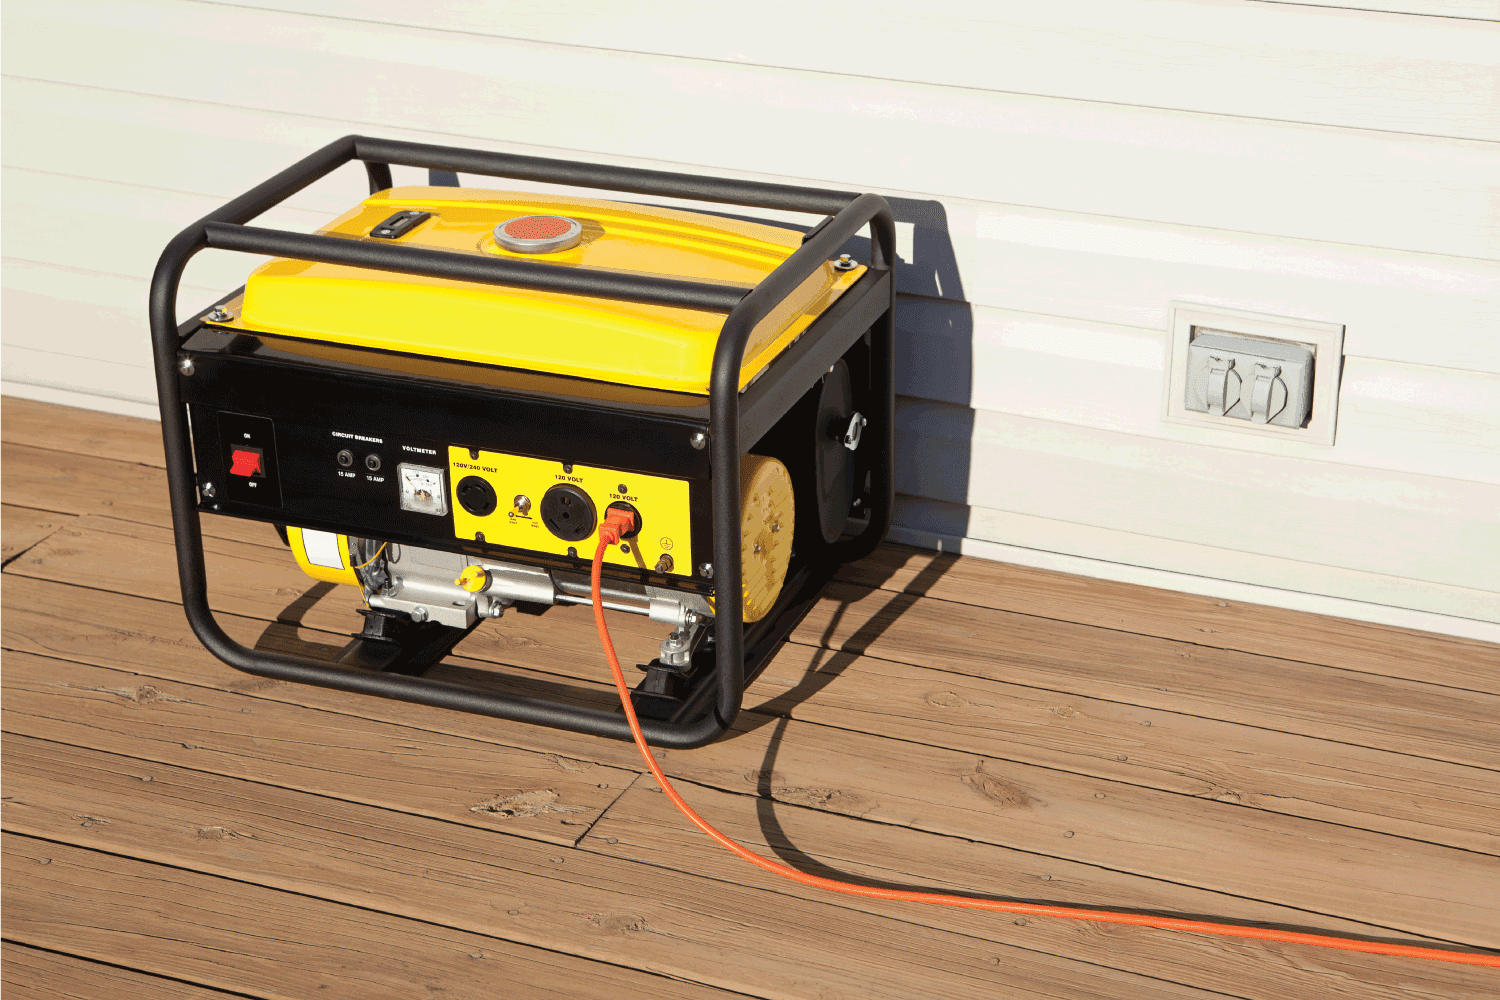 Extension cord plugged into a gasoline powered, 4000 watt, portable electric generator